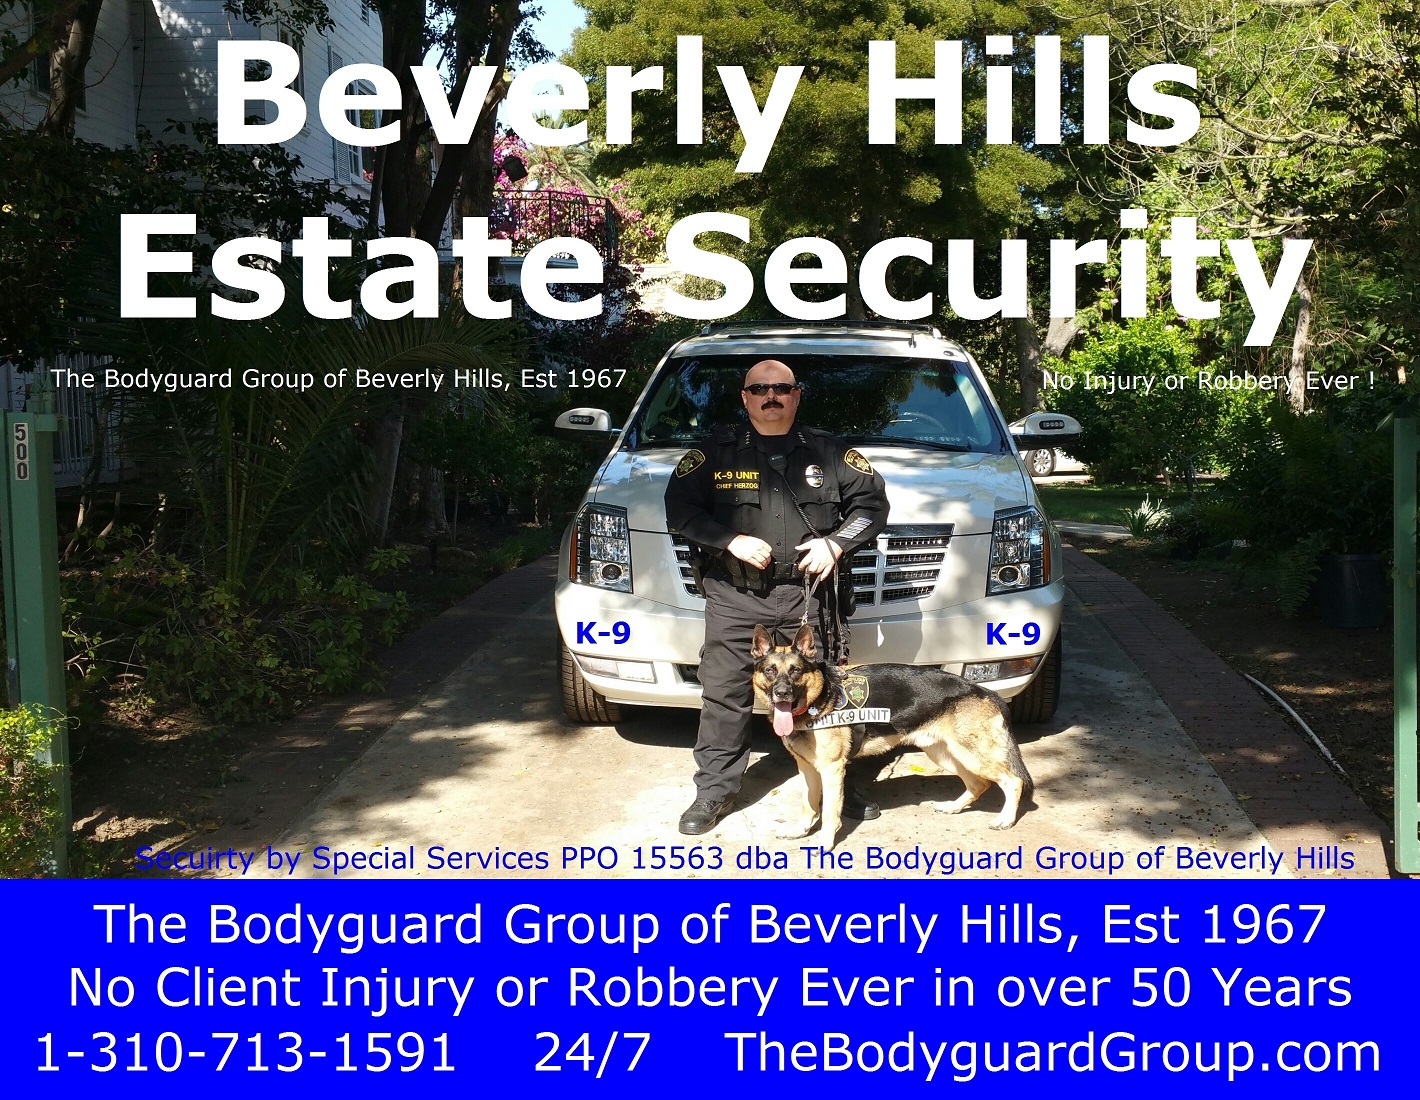 Estate security in Beverly Hills estate security 90210 Beverly Hills estate security famous celebrity bodyguard Kris Herzog Beverly Hills Bodyguards The Bodyguard Group of Beverly Hills